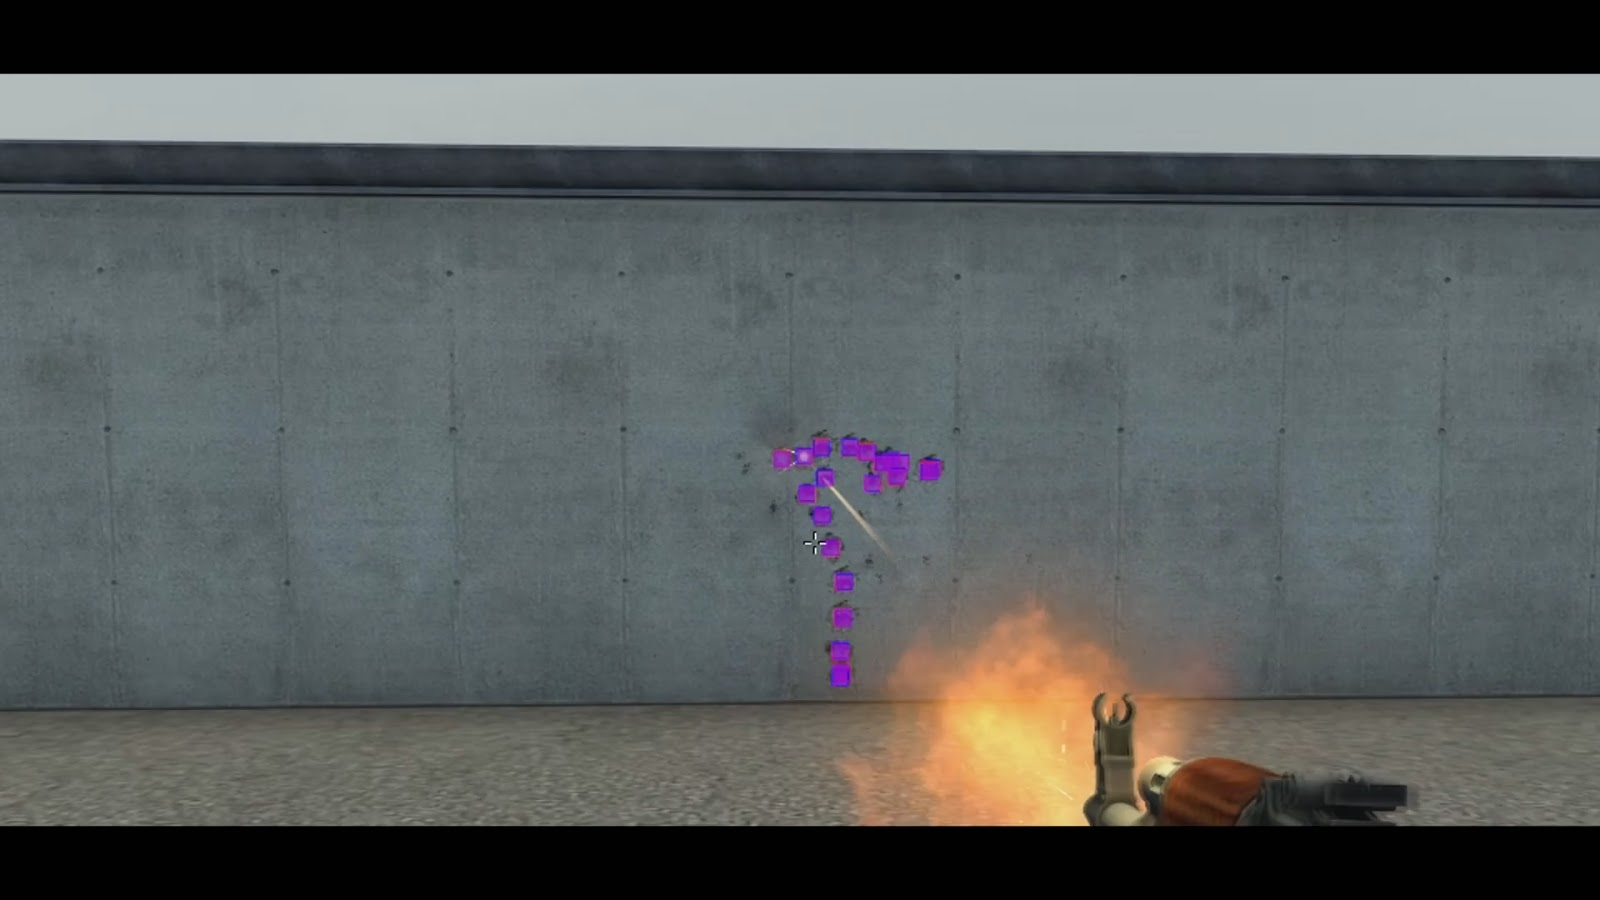 Spraying CS:GO - Recoil compensation